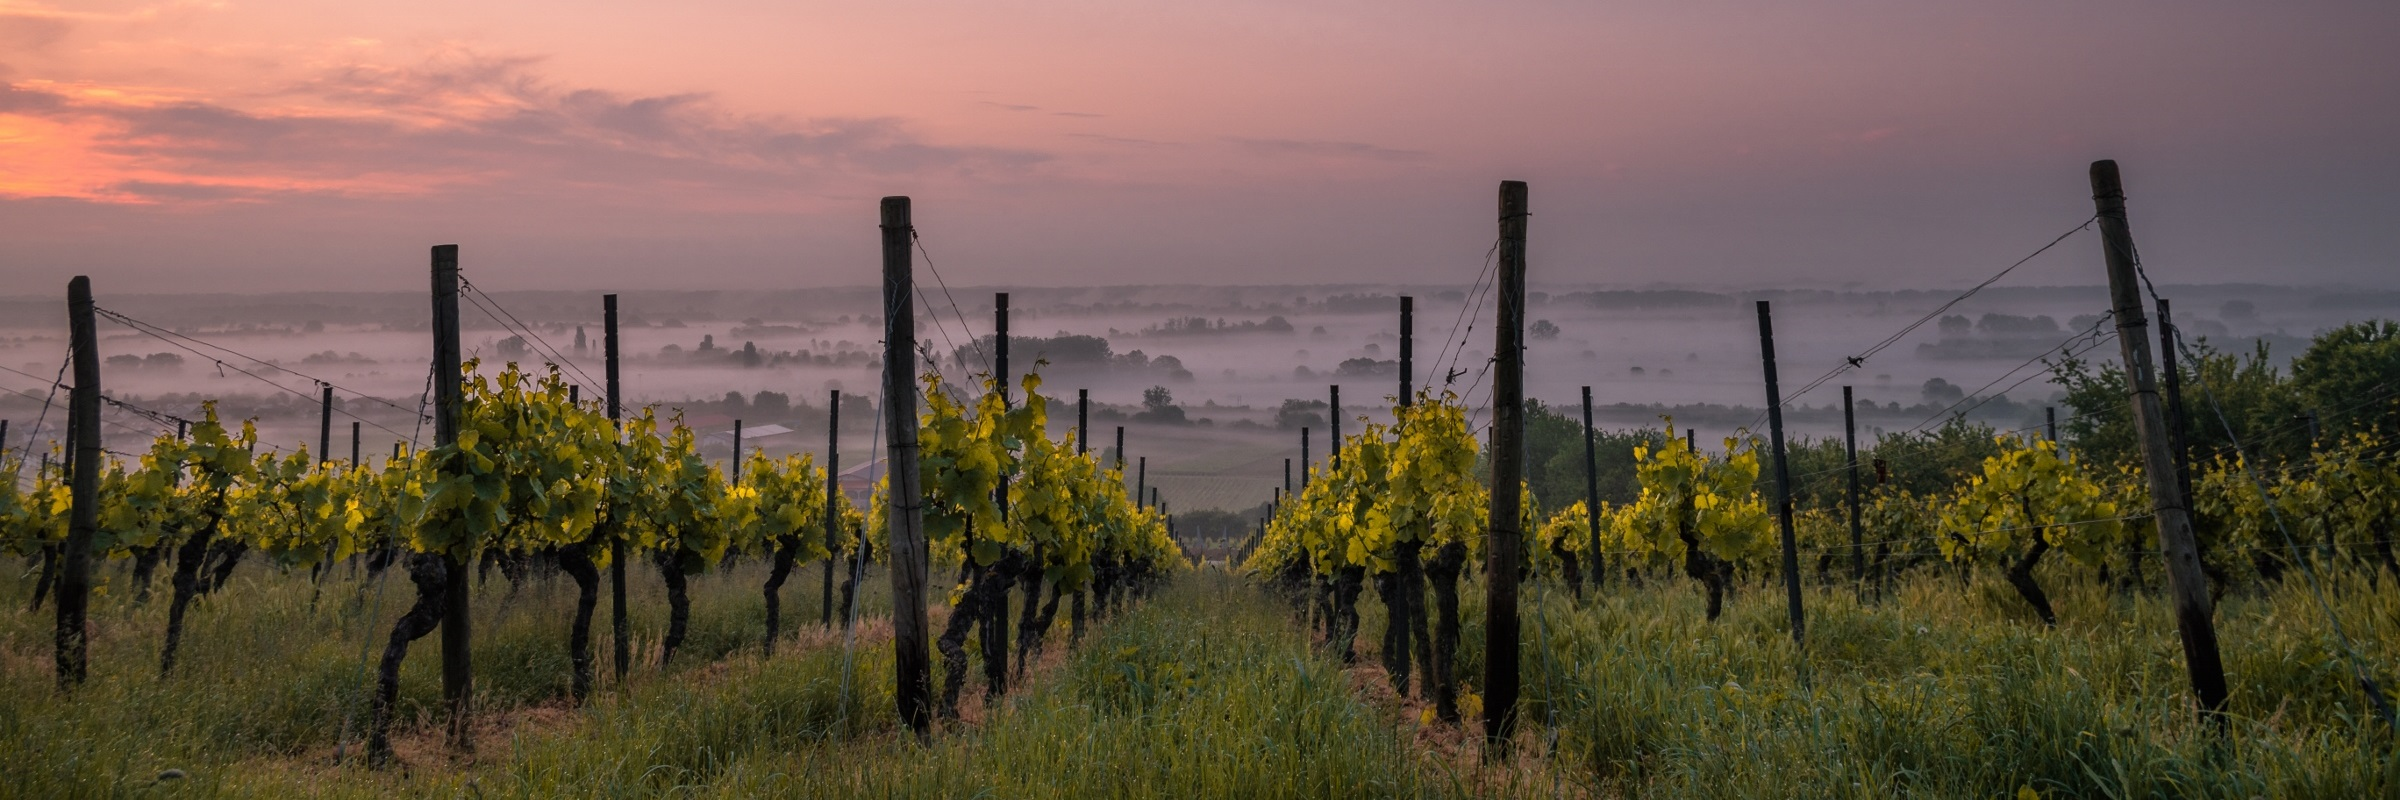 Vinyard Sunset (2400×800)